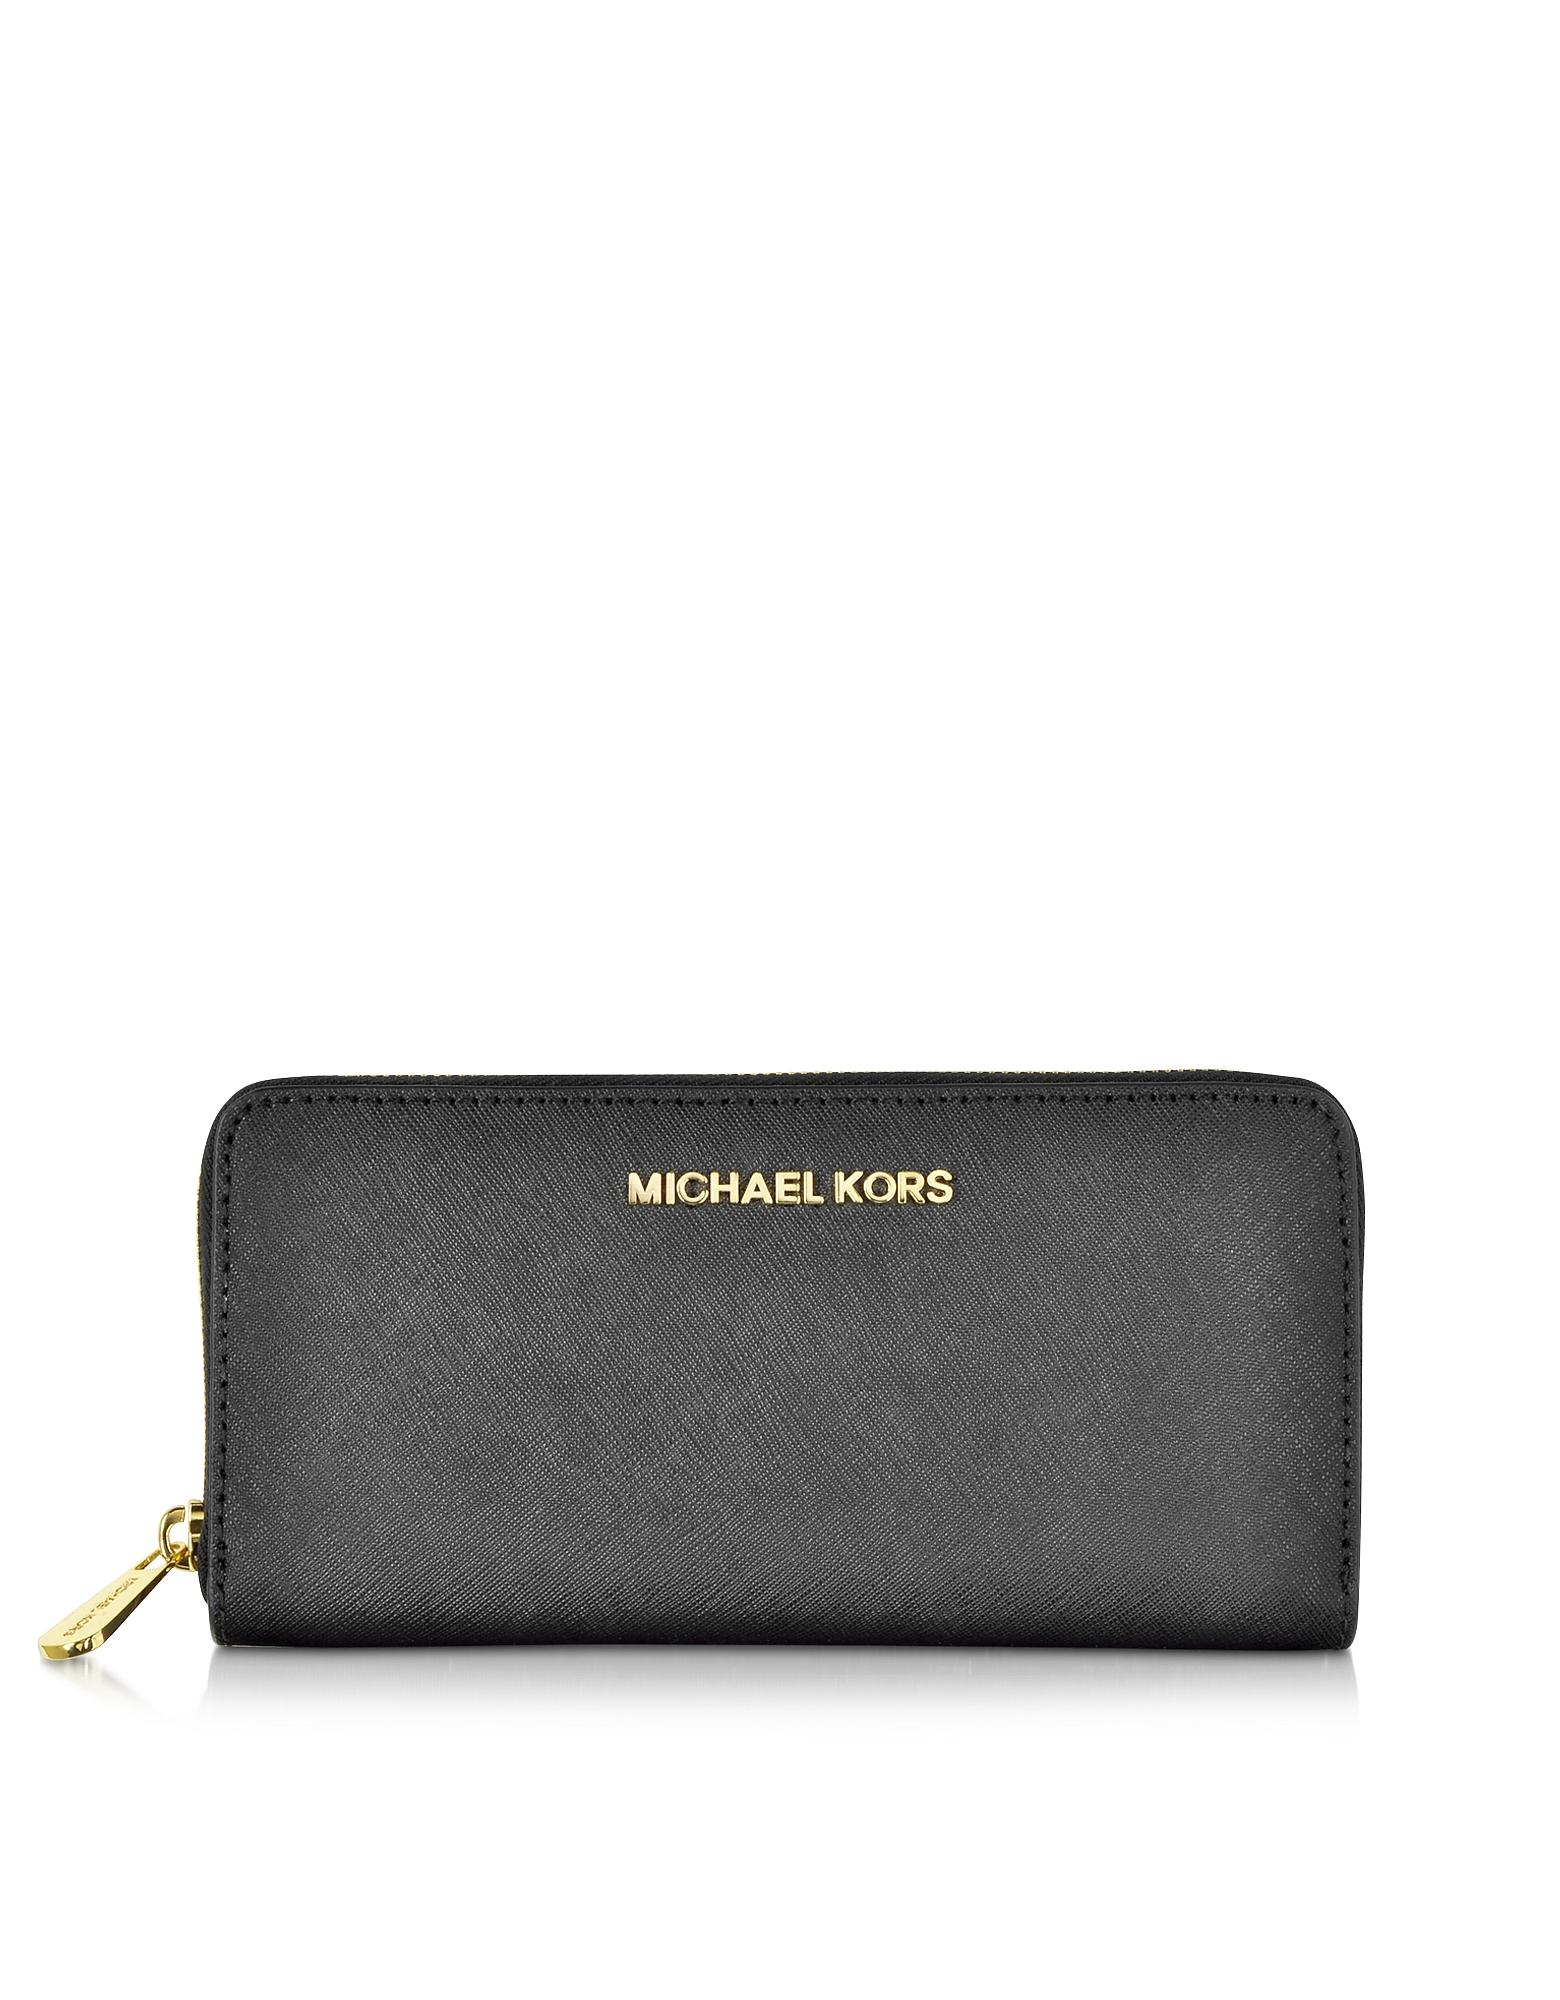 f4e6ff57e476 Michael Kors Saffiano Wallet Uk | Stanford Center for Opportunity ...